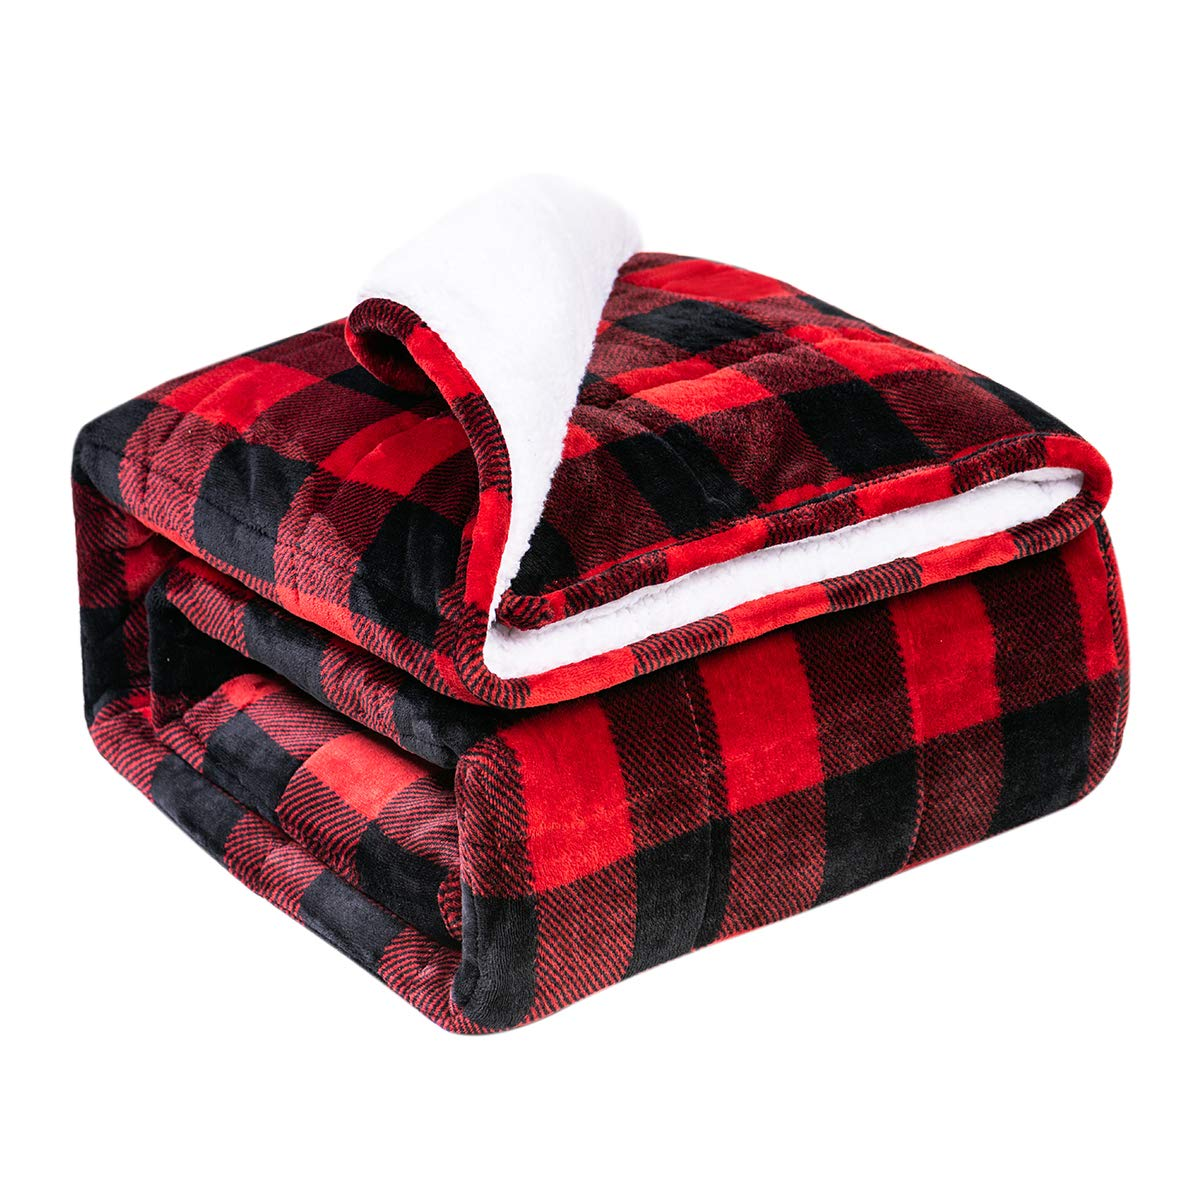 BUZIO Sherpa Fleece Weighted Blanket for Adult, 20 lbs Thick Fuzzy Bed Blanket with Soft Plush Flannel, Dual Sided Cozy Fluffy Blanket, 60 x 80 inches, Tartan Red